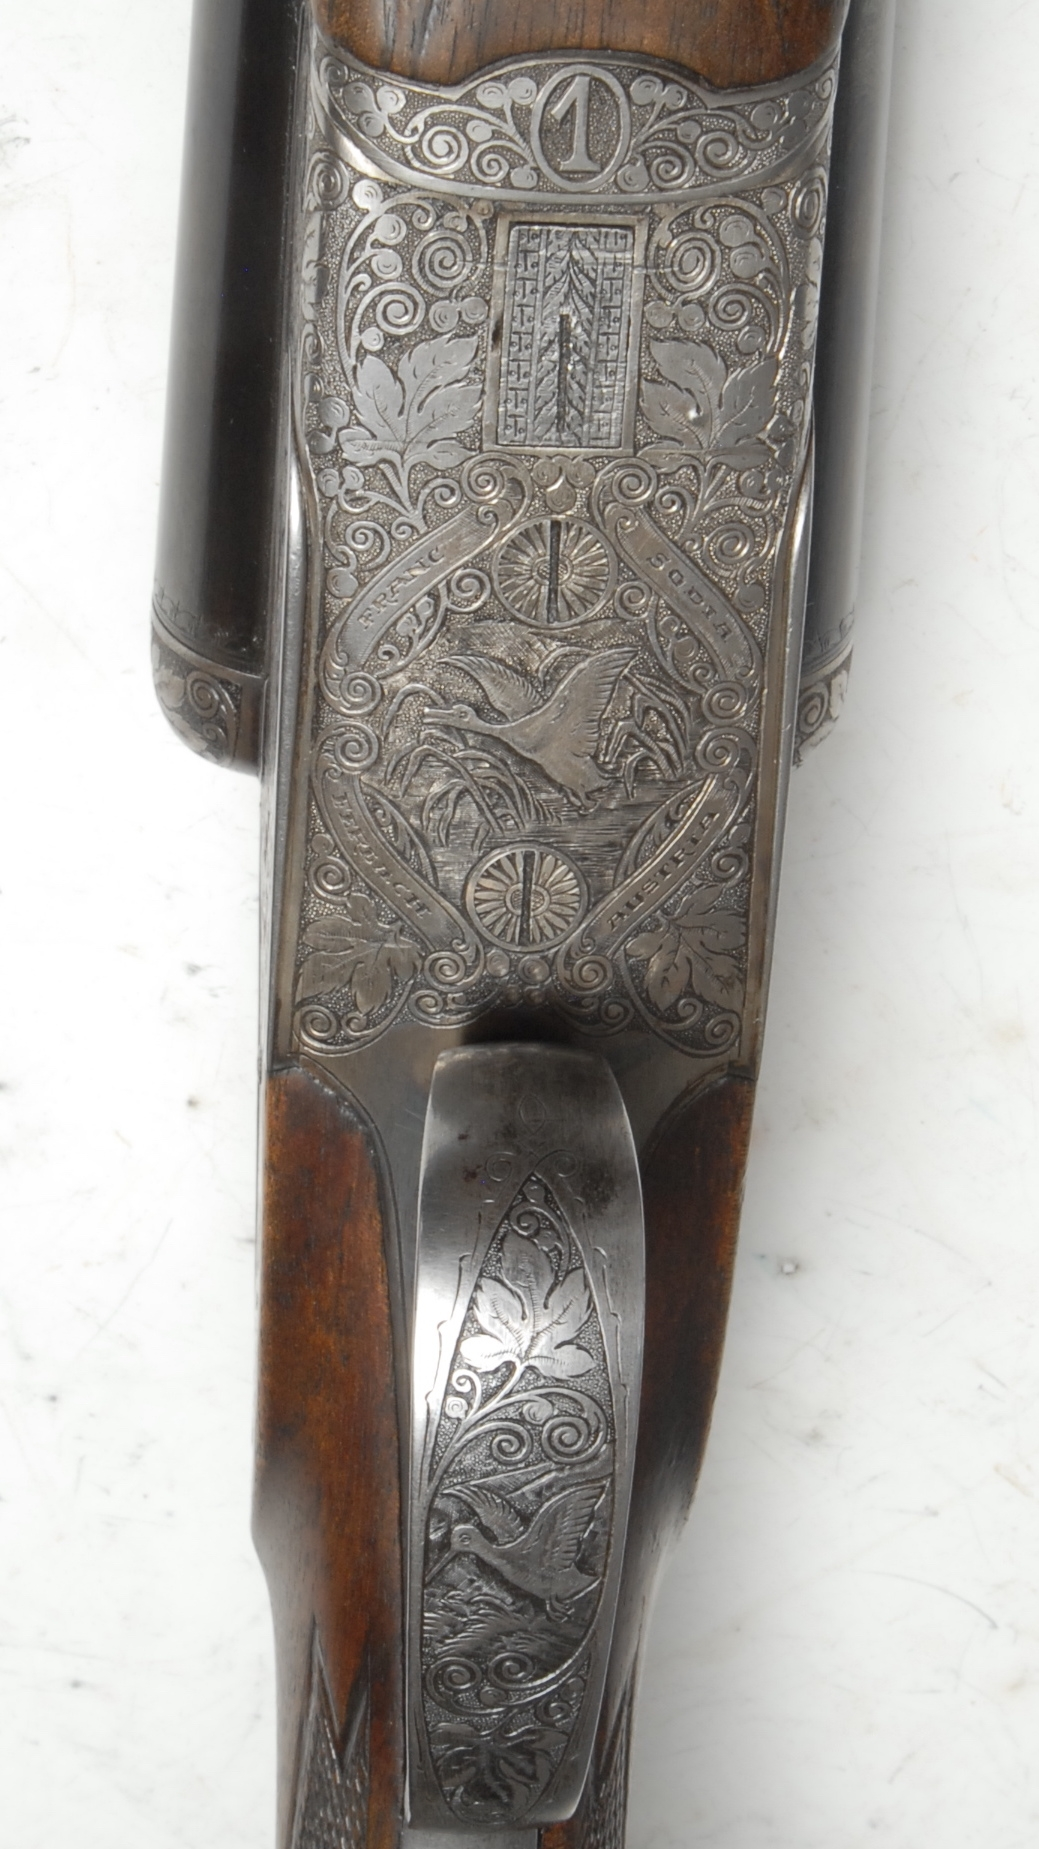 12 Bore Side by Side side lock ejector shotgun serial number 33150. Barrel length 28 inches. - Image 4 of 4